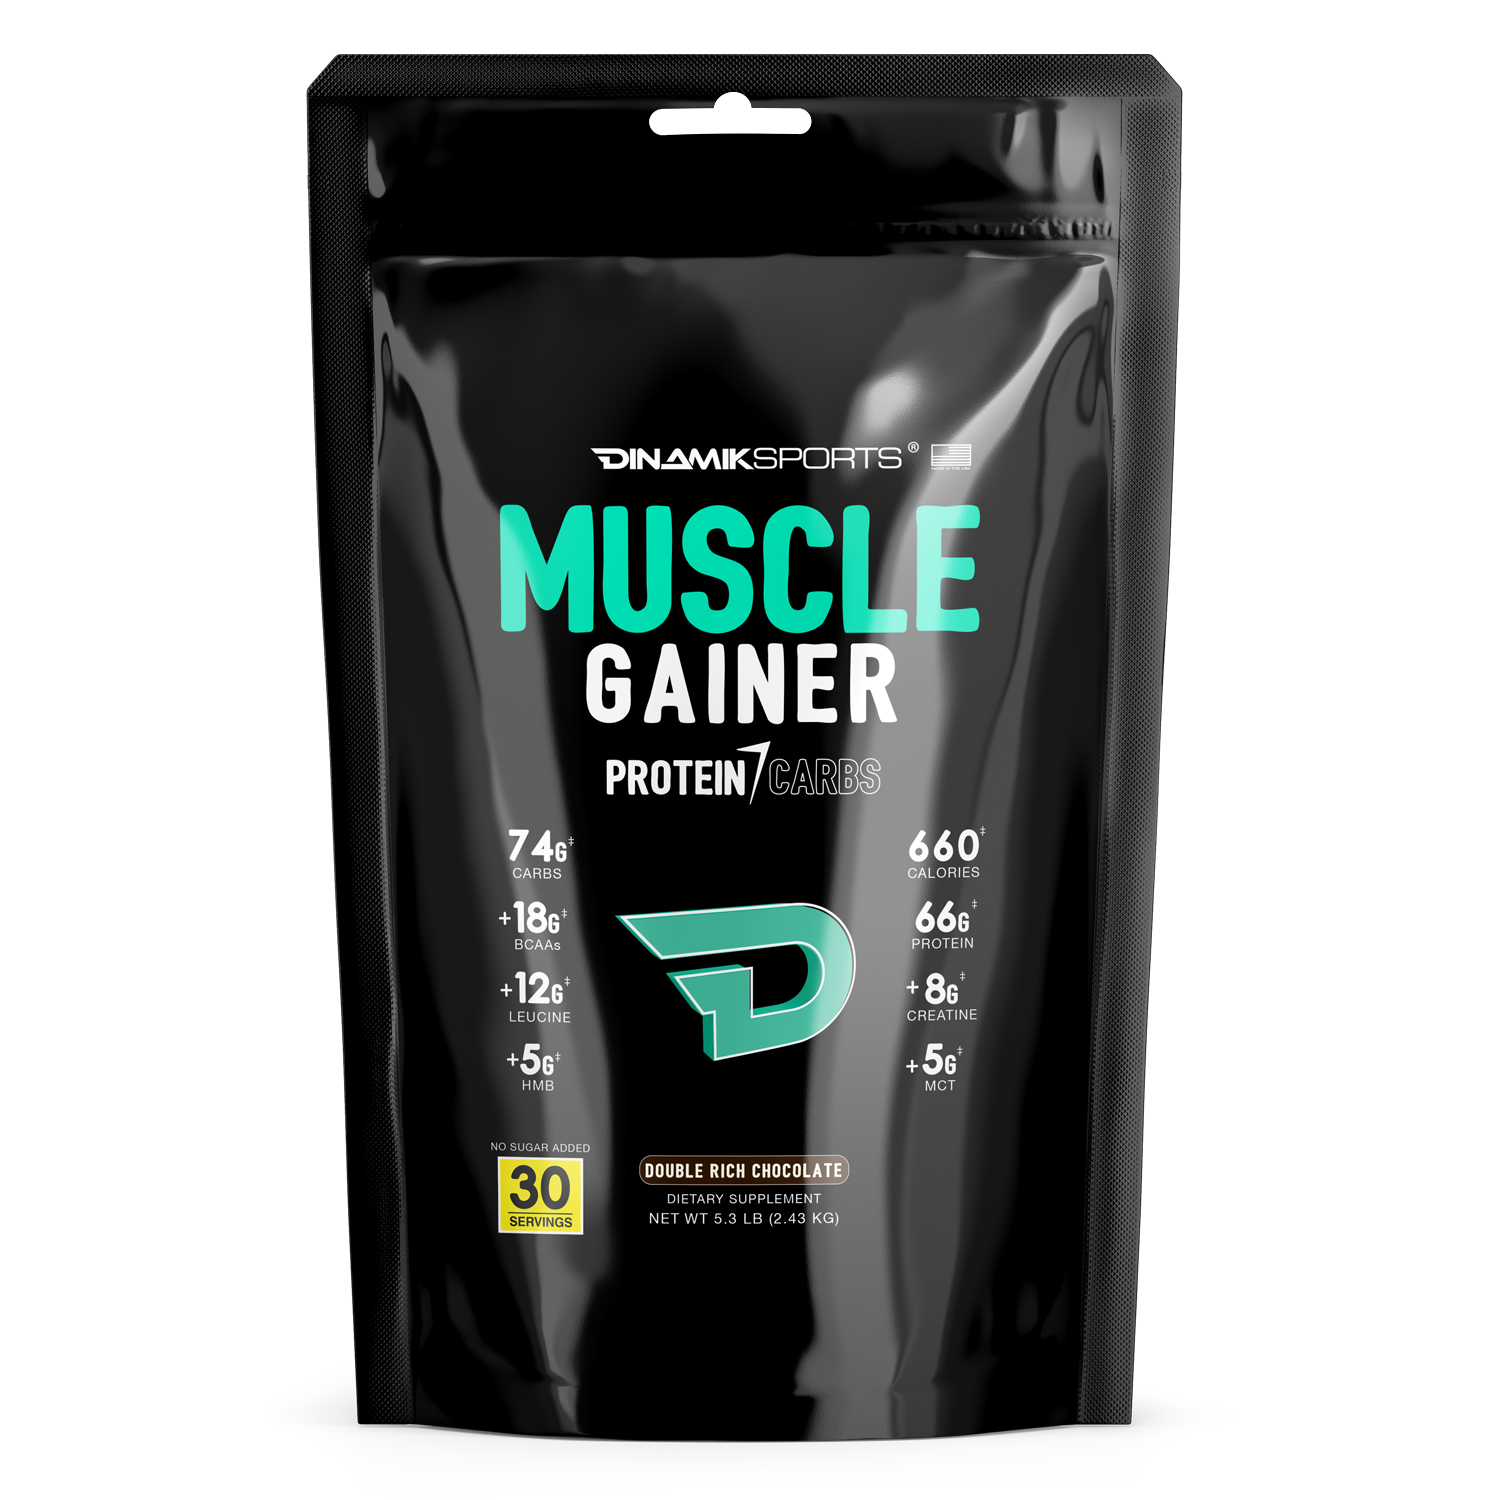 MUSCLE GAINER, DOUBLE RICH CHOCOLATE, 5 LBS